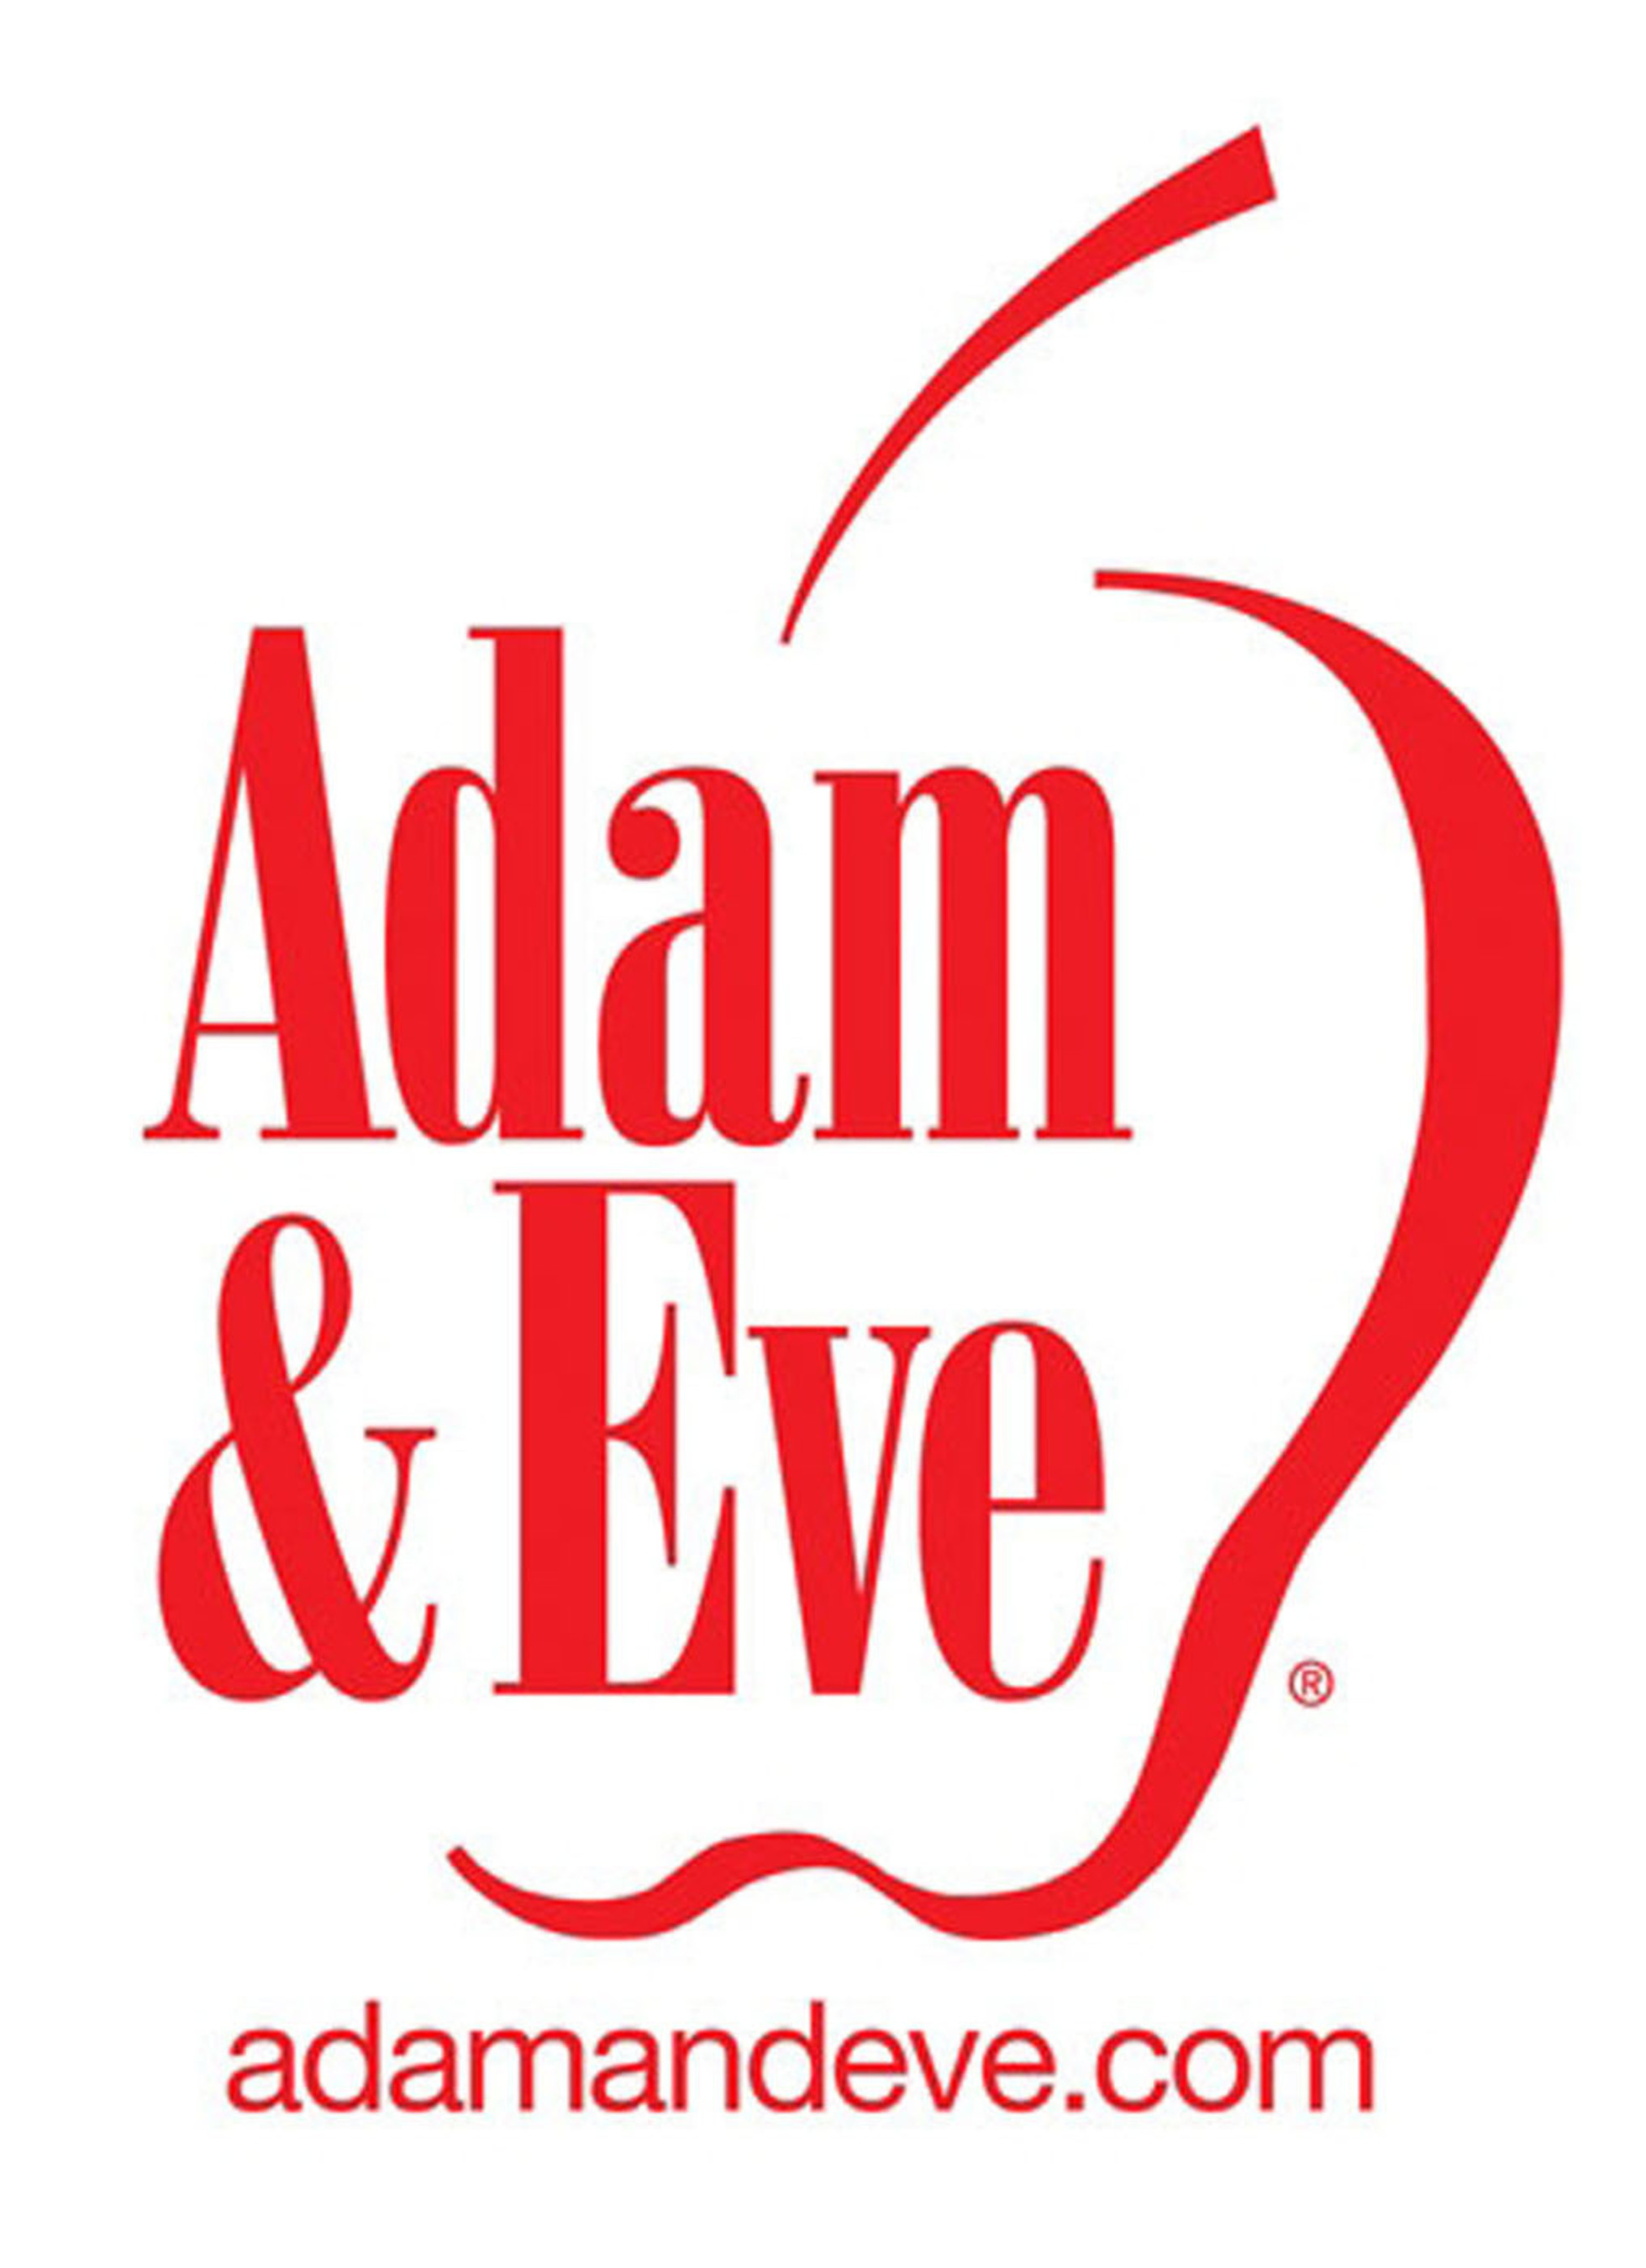 Sex toys adam and eve images 23